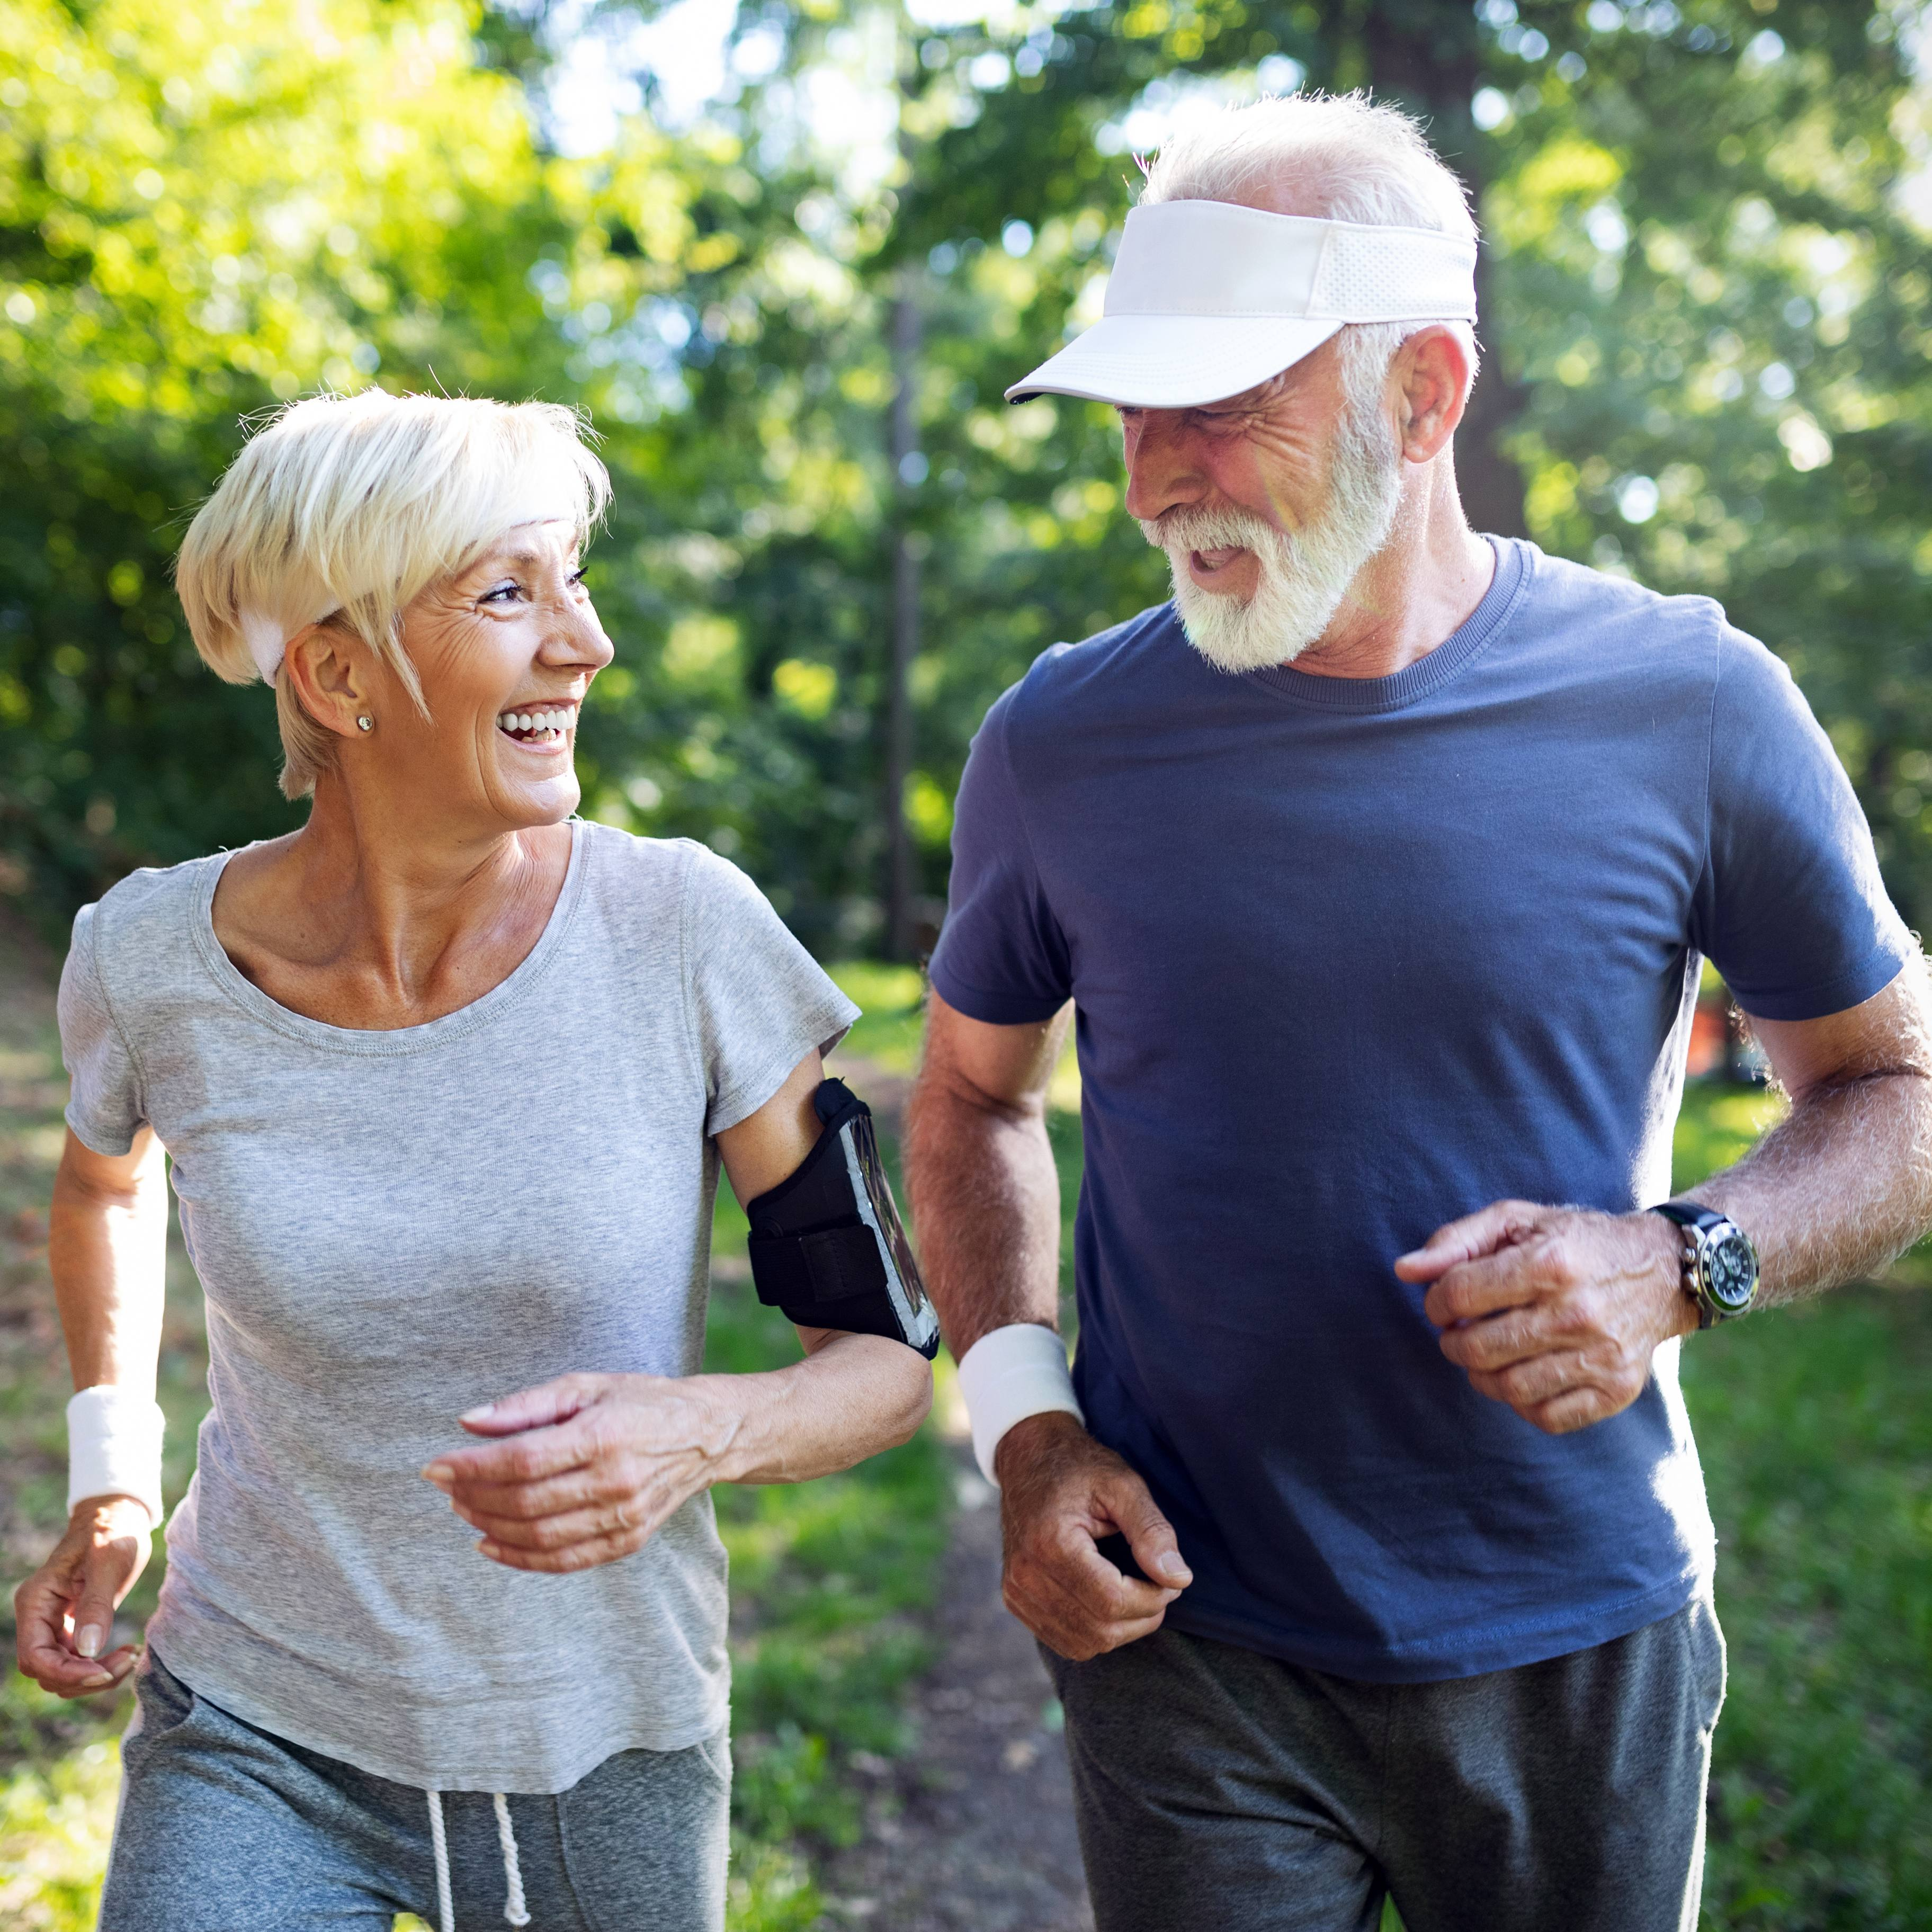 a happy, smiling older couple running on a path in a sunny park